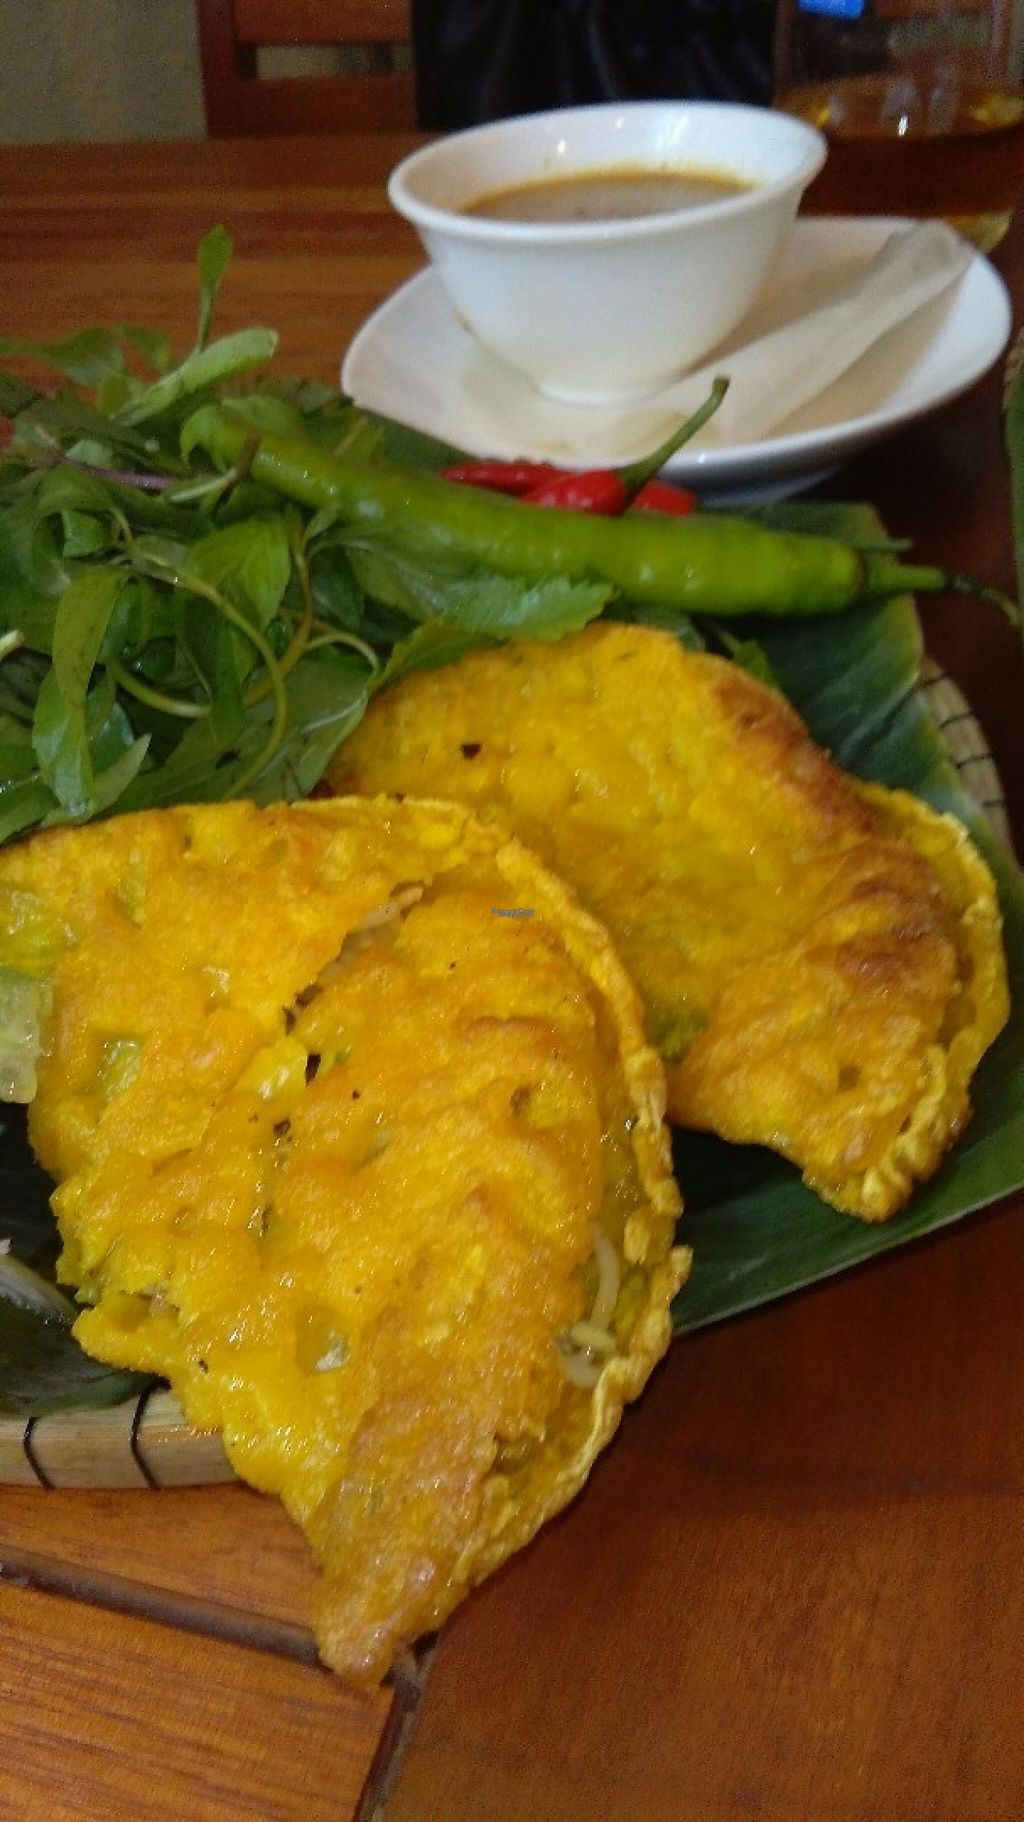 """Photo of CLOSED: Da Nang Com Chay  by <a href=""""/members/profile/KPike"""">KPike</a> <br/>Banh Xeo (savoury crepe) <br/> November 2, 2016  - <a href='/contact/abuse/image/81151/186085'>Report</a>"""